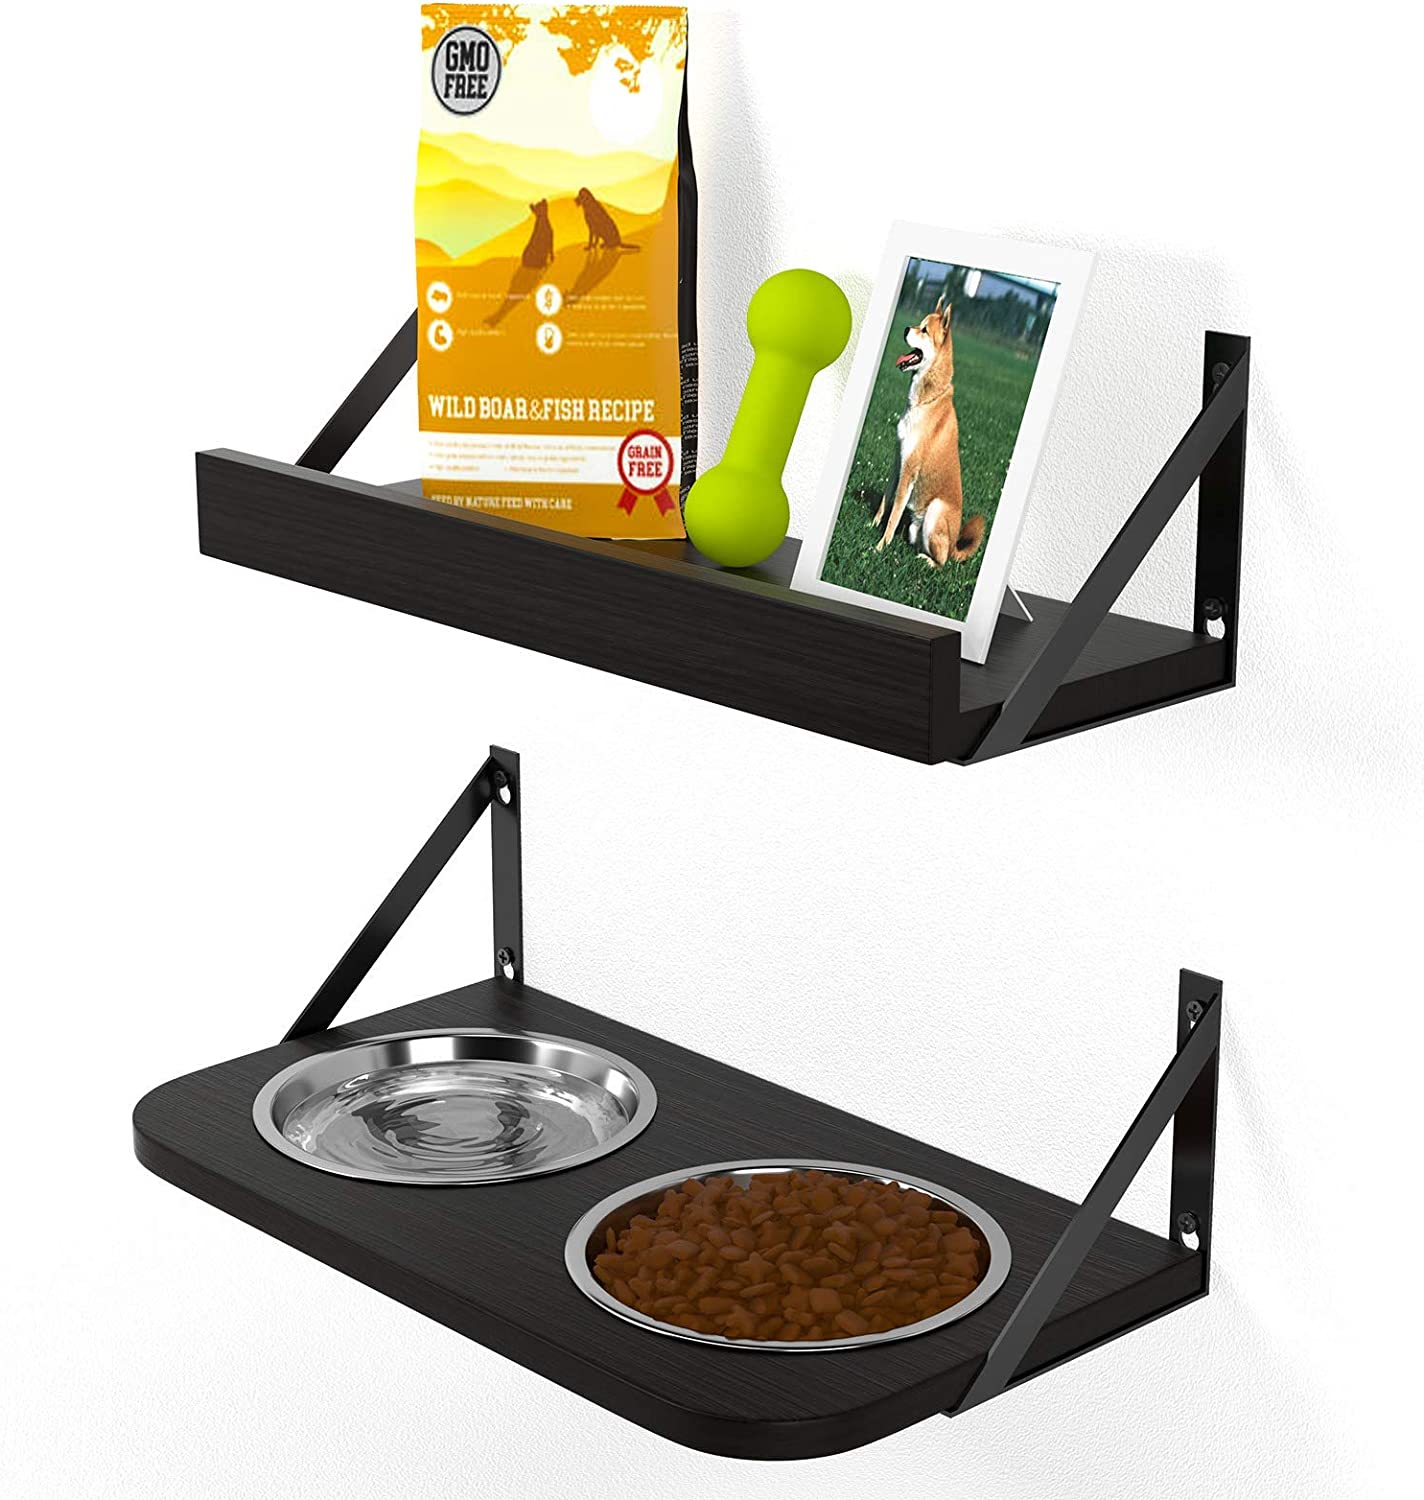 BUYBAR Adjustable Raised Dog Bowls for Large Dogs Food and Water Height Wall Mounted Floating with Stand Shelf 2 Stainless Steel Elevated Pet Comfort Cat Feeding Bowl (Double, Black)